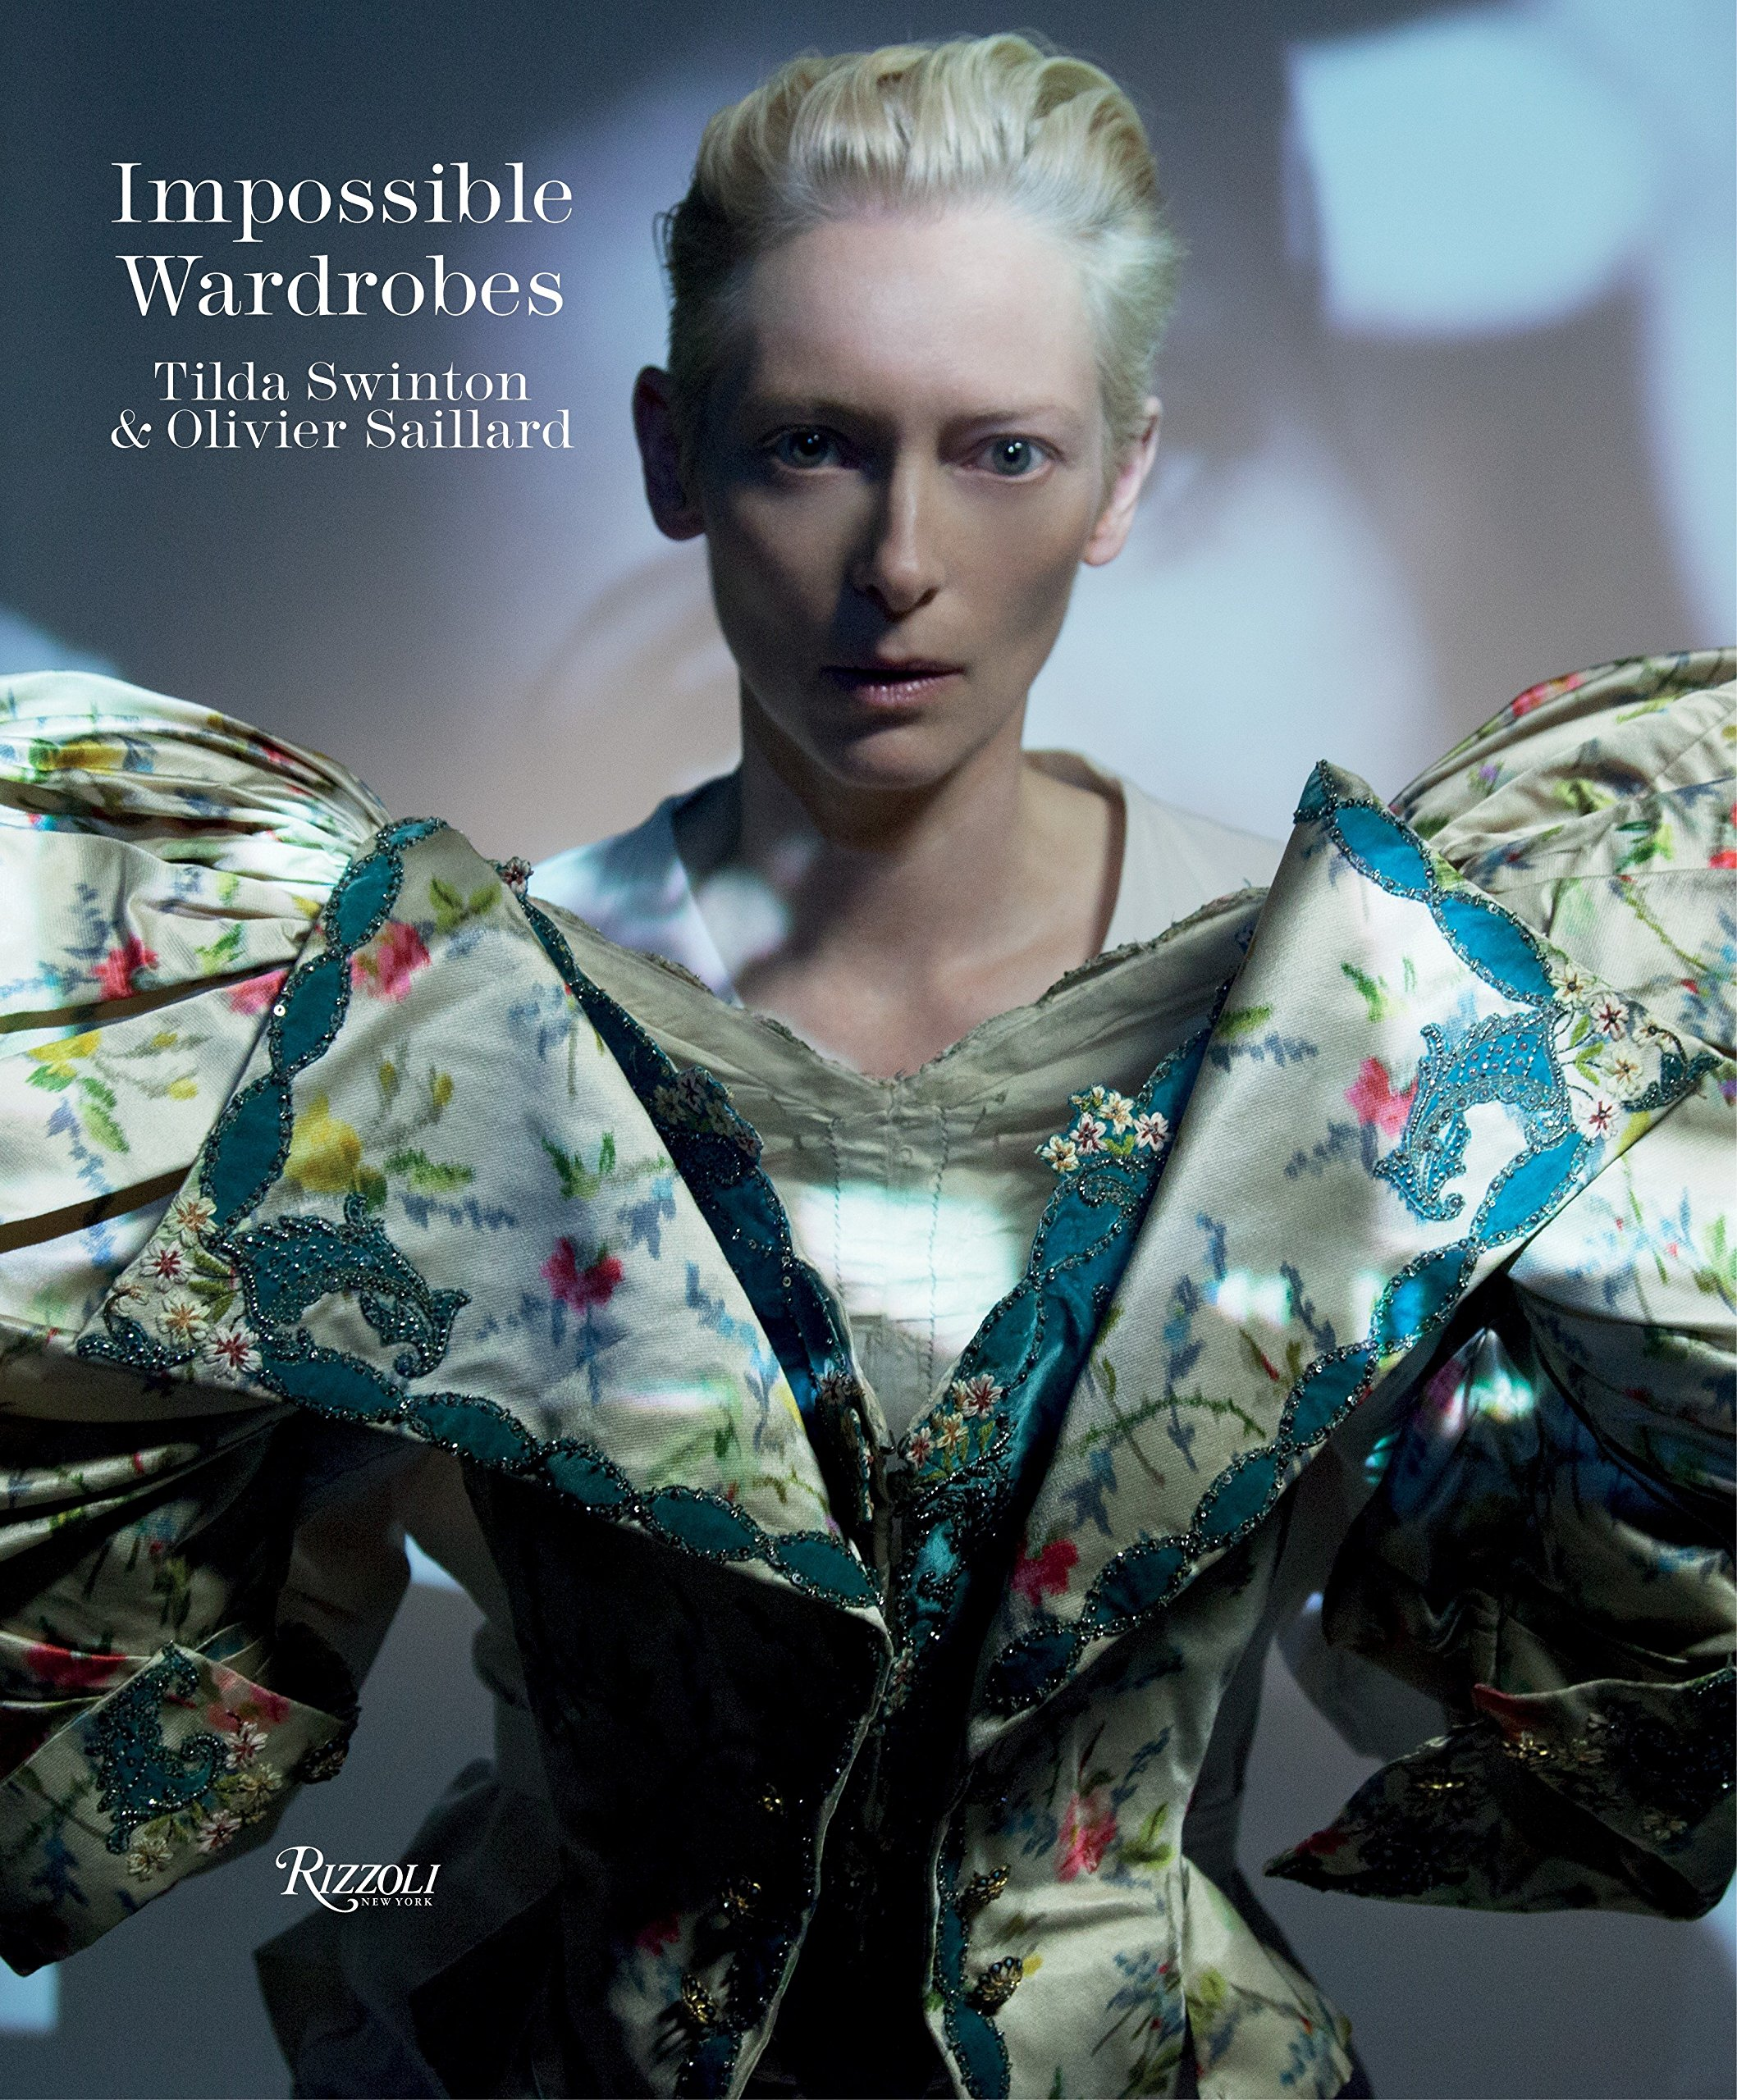 Impossible Wardrobes by Skira Rizzoli